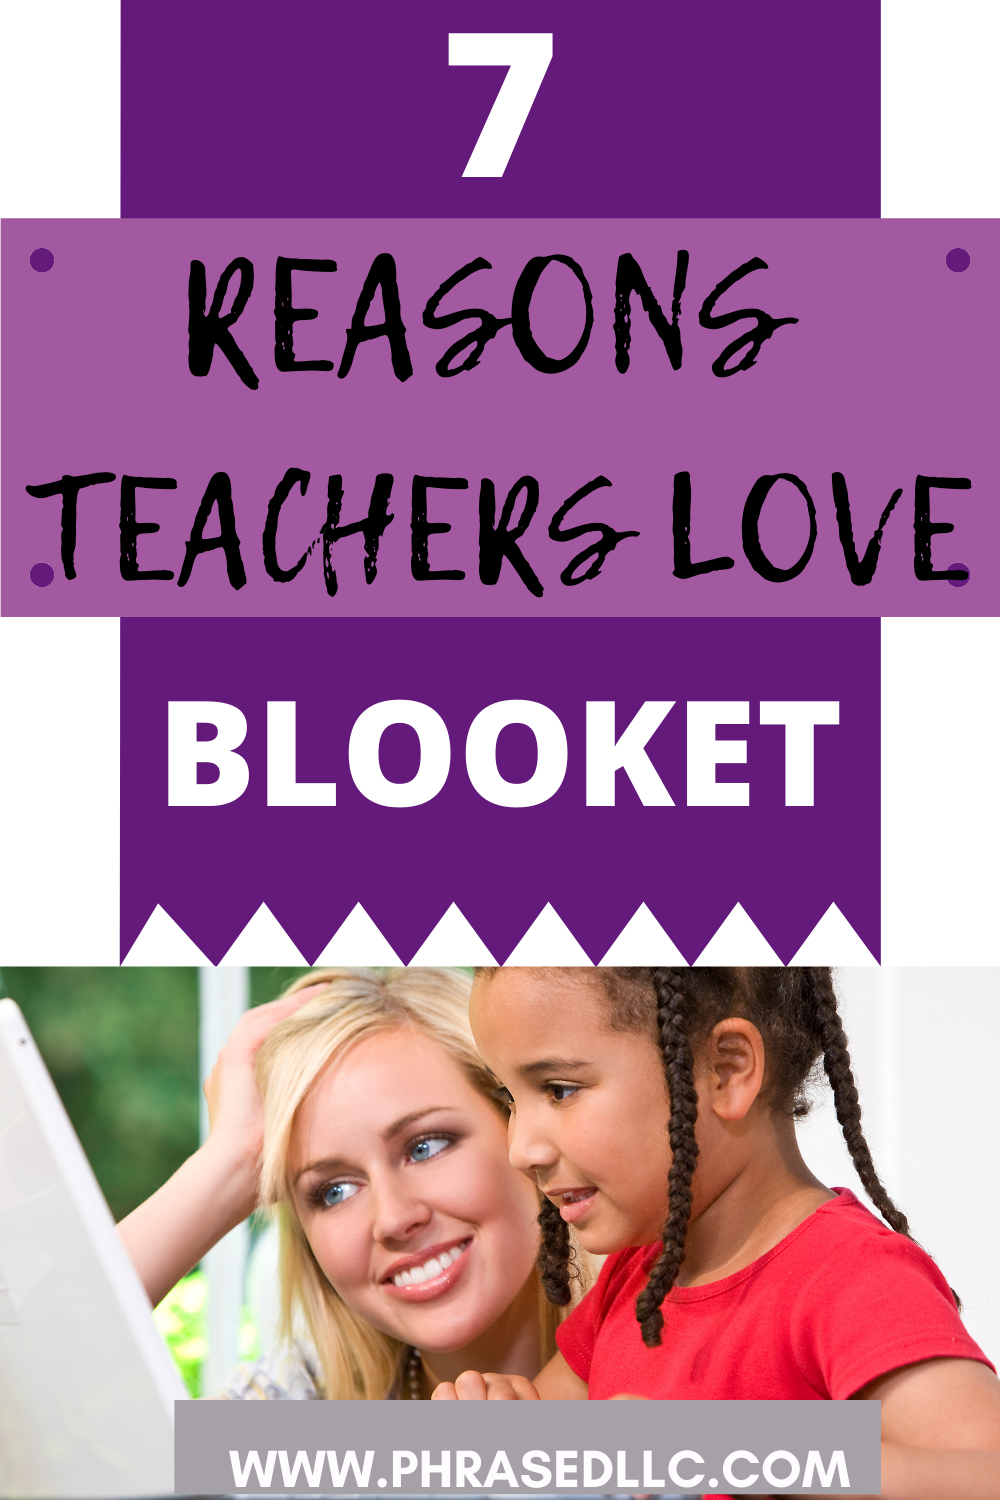 Teachers love Blooket for these 7 ways it engages students